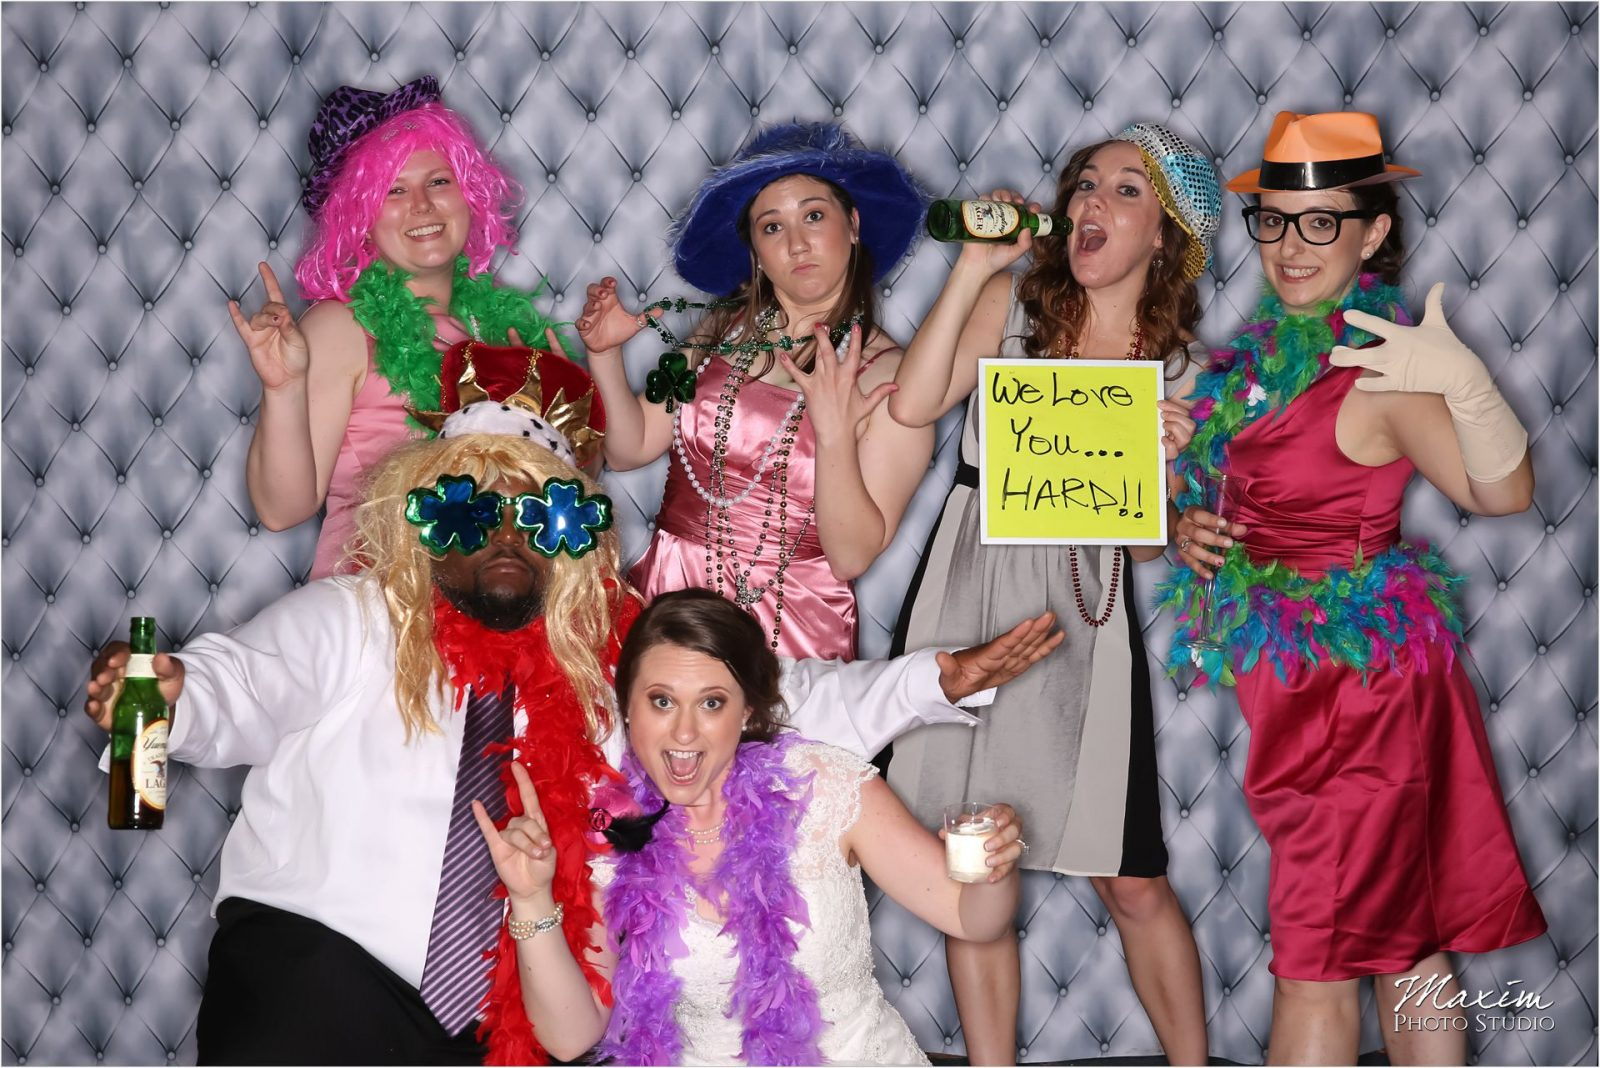 Unboxed Photo Booth Longworth Hall Wedding Reception